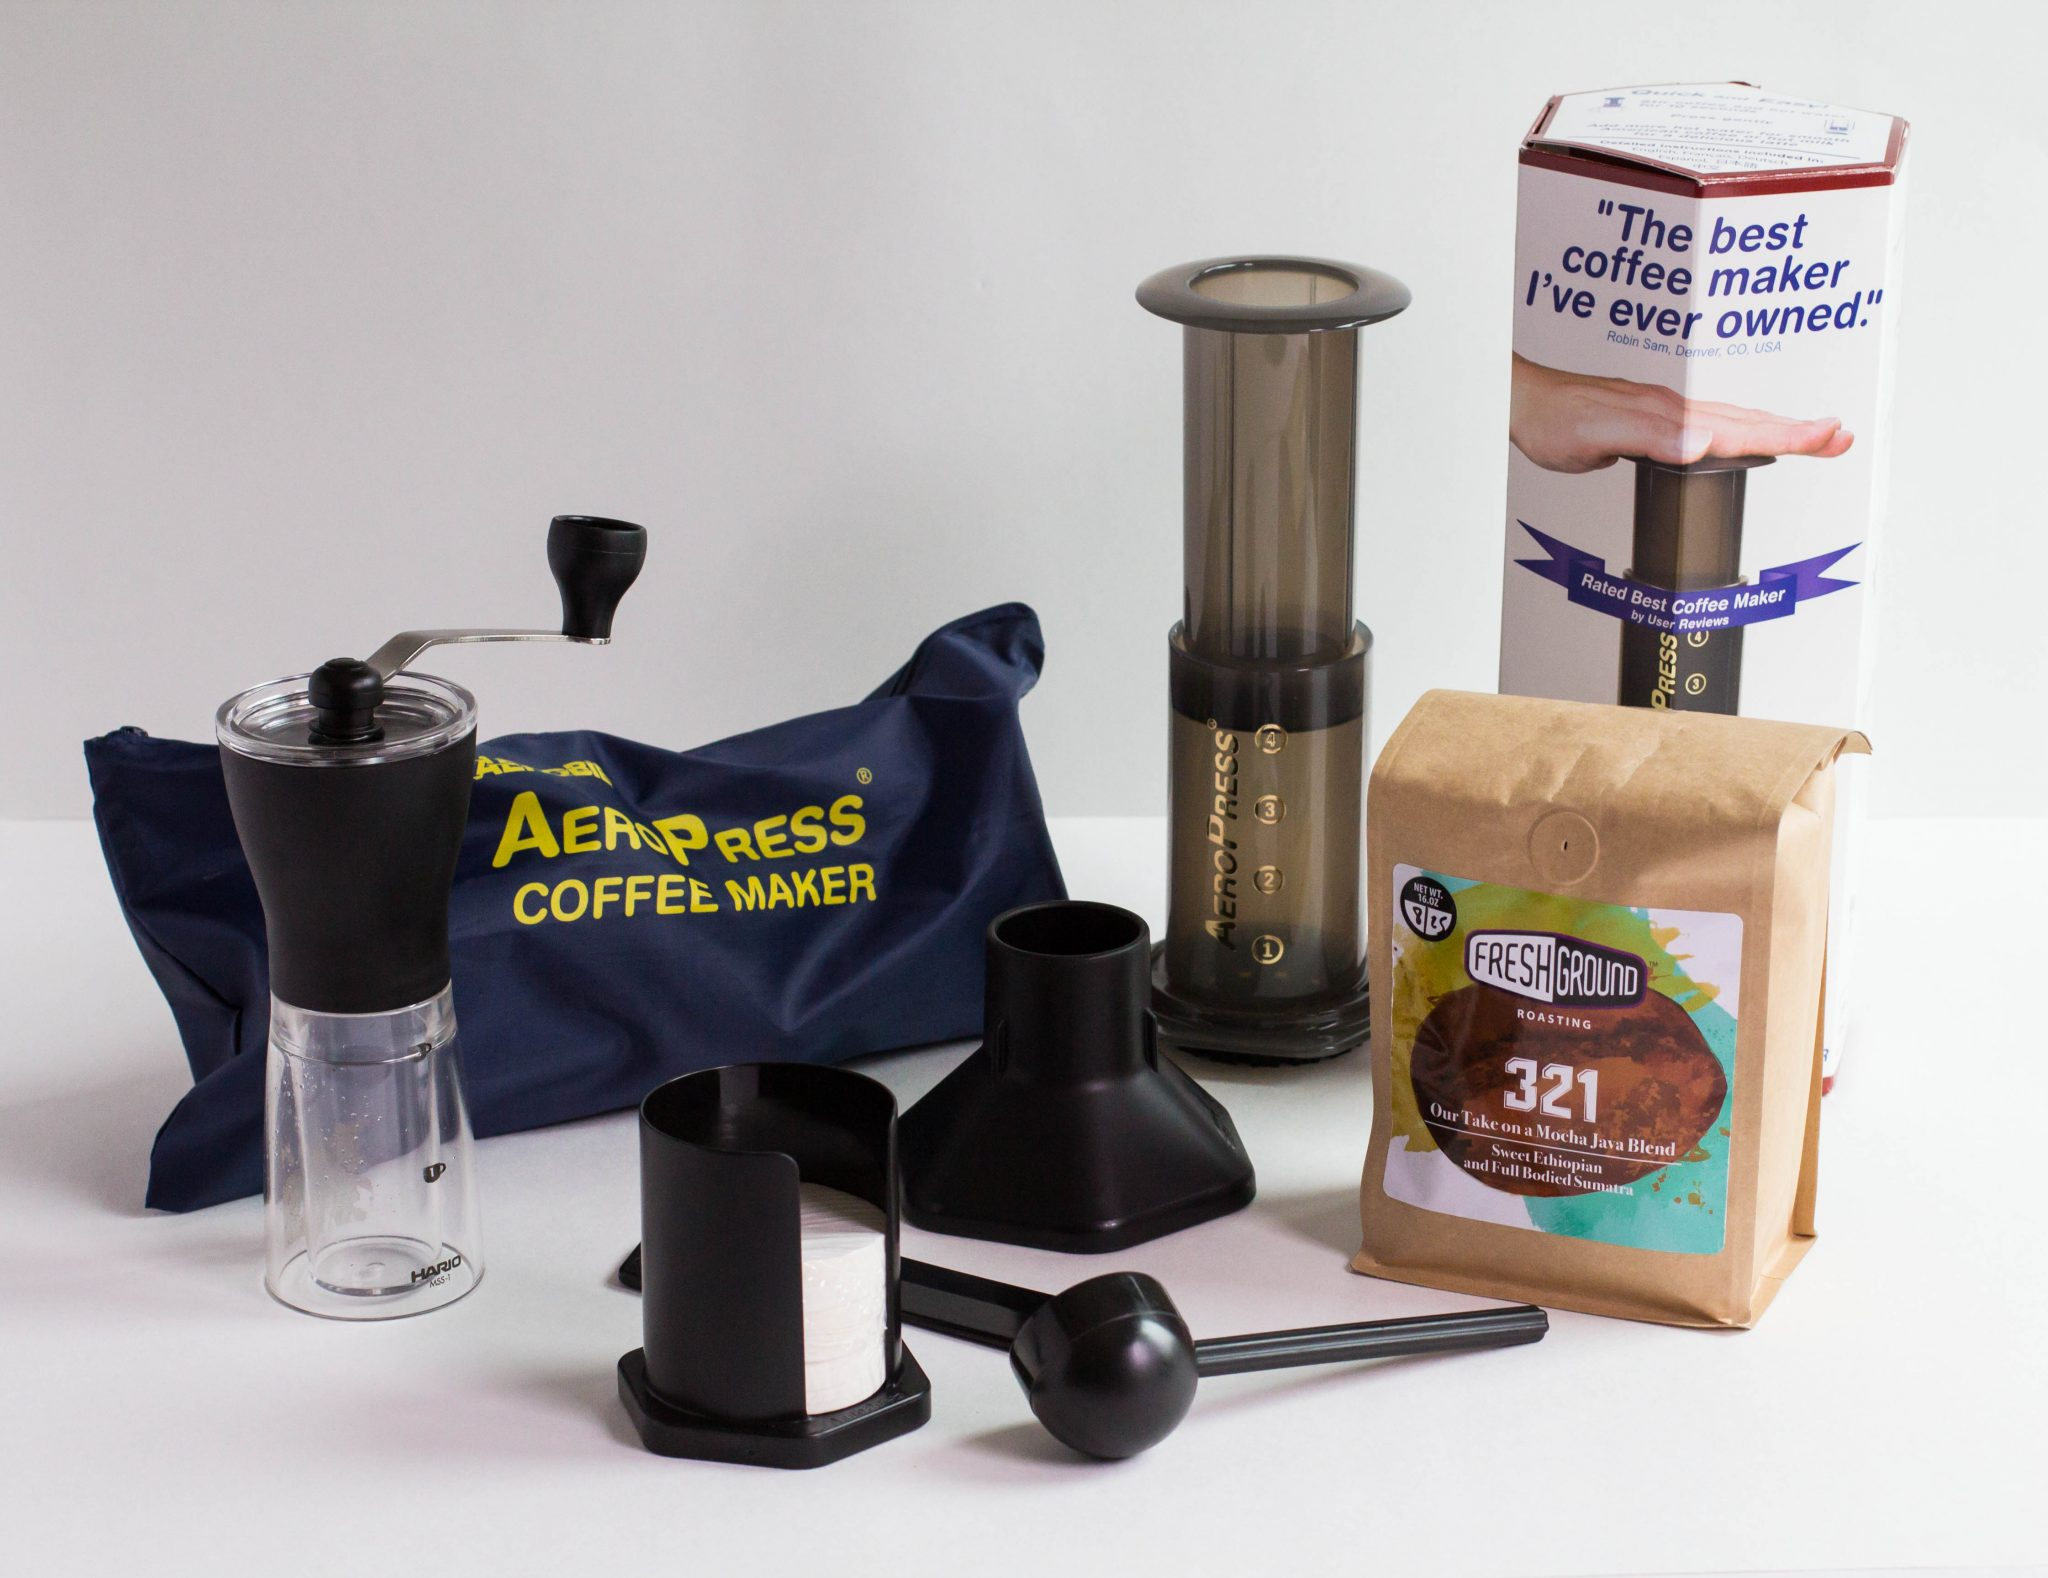 FreshGround has all of the best coffee brewing methods